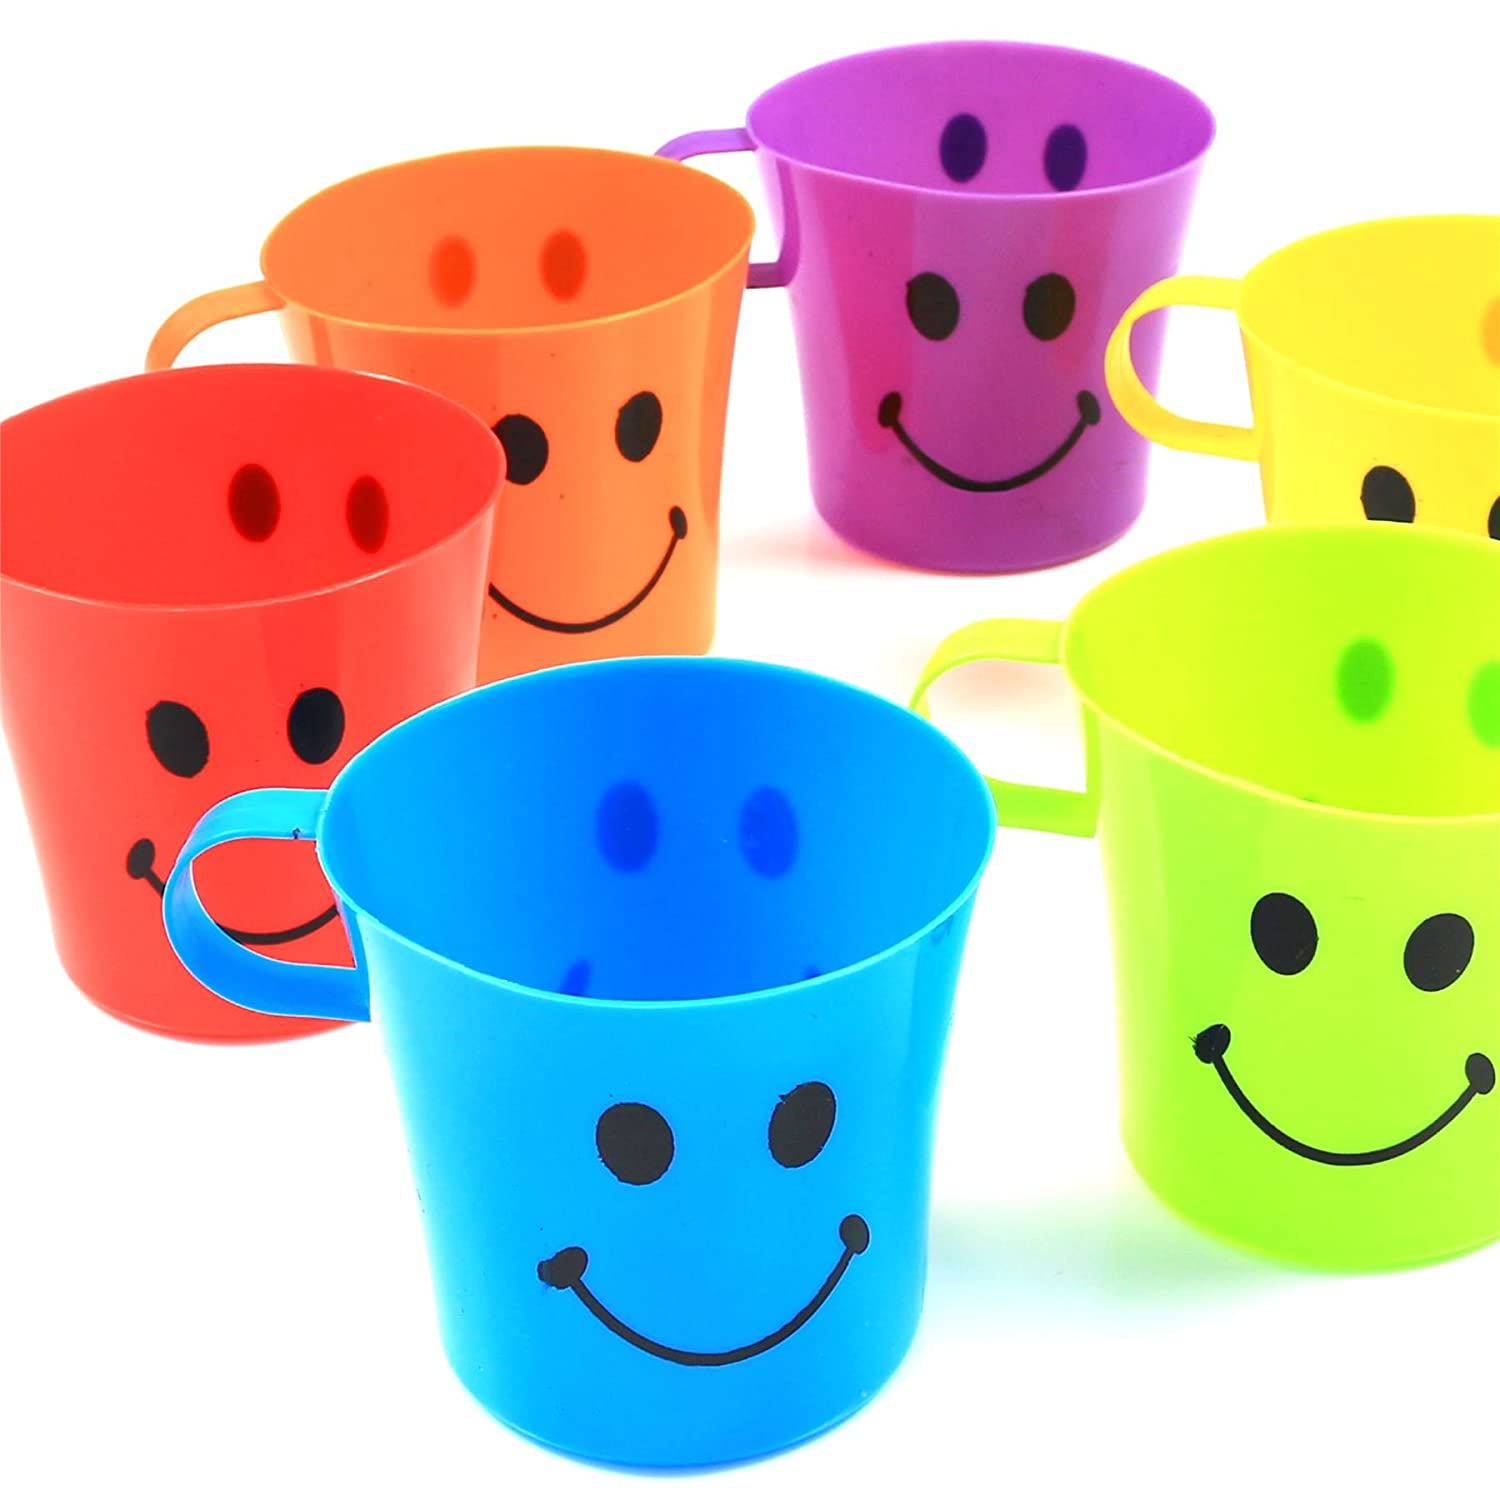 24x Kids Plastic Smiley Face Cups - Handled Mugs Camp/Travel Party Set White Hinge